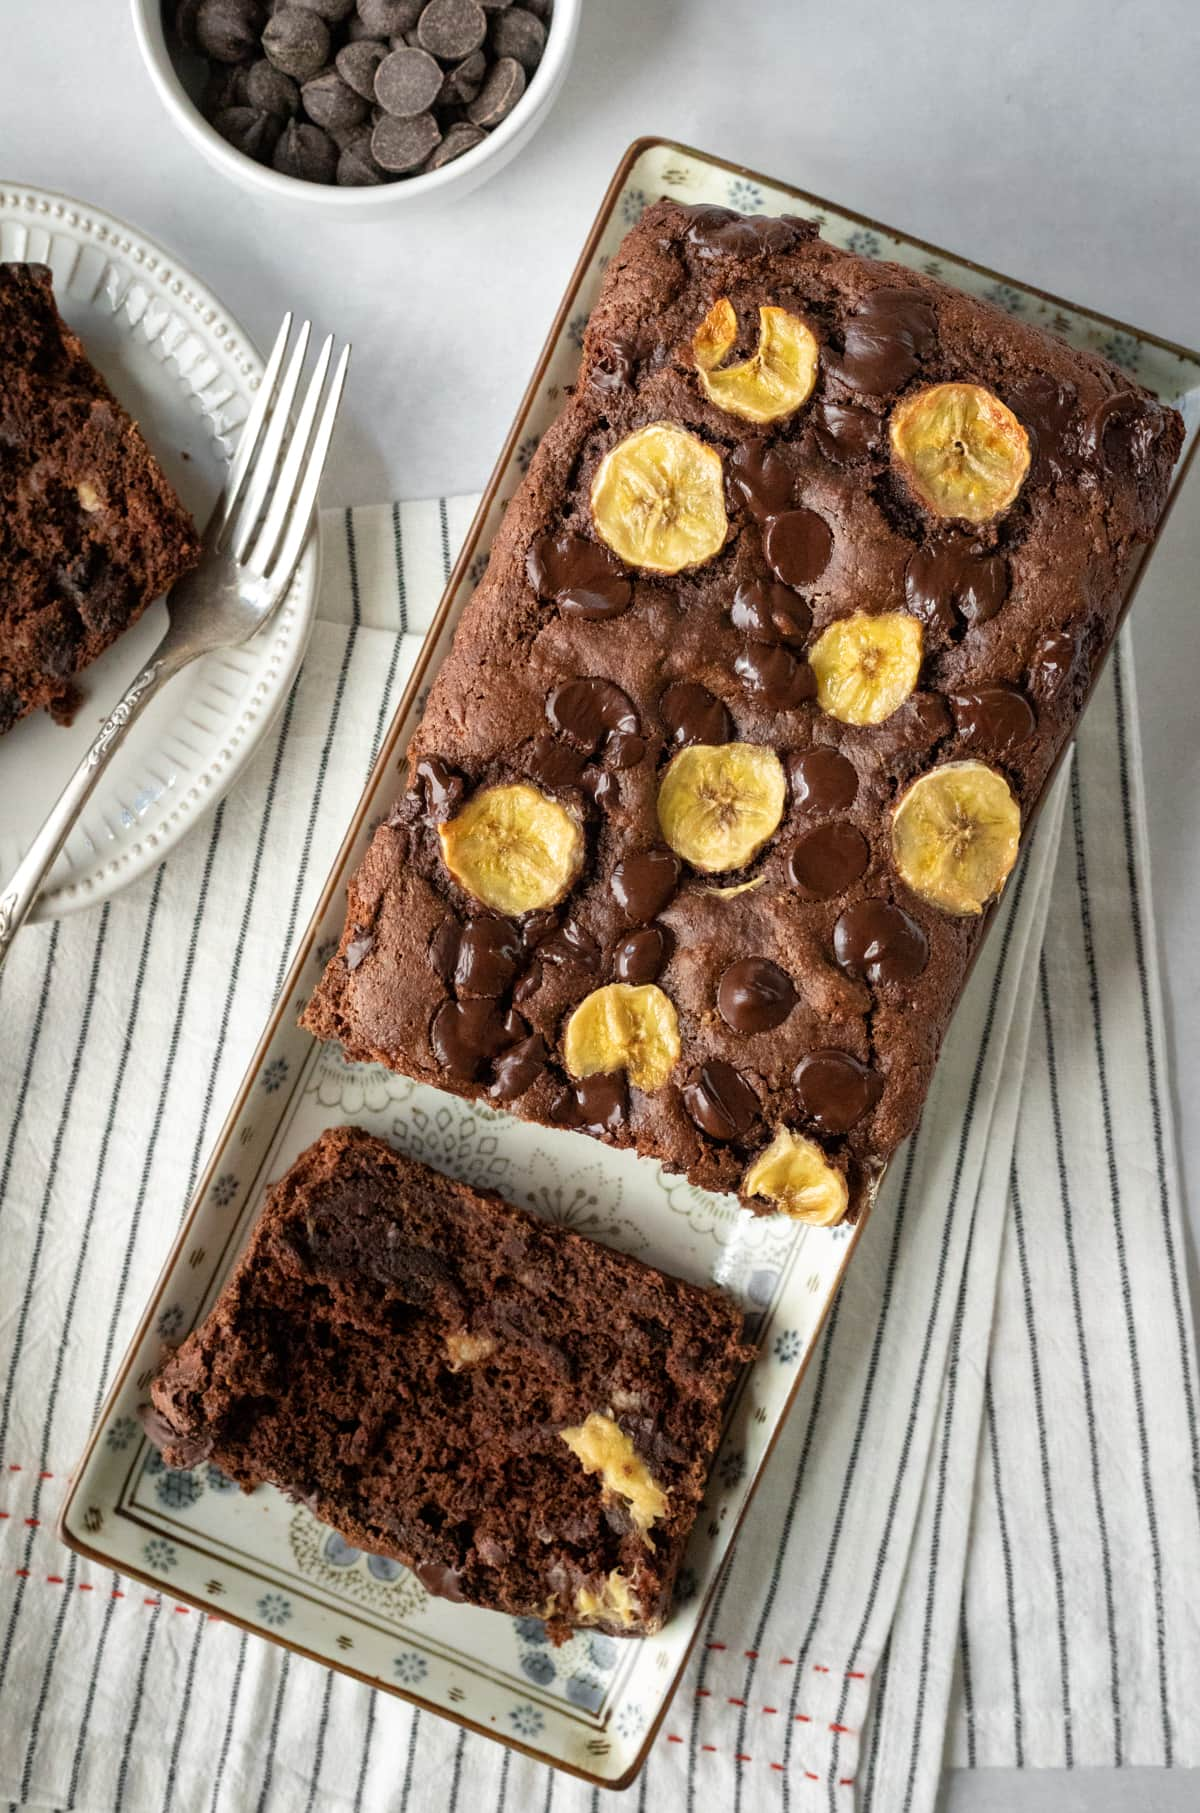 dark chocolate loaf with banana slices baked into the top